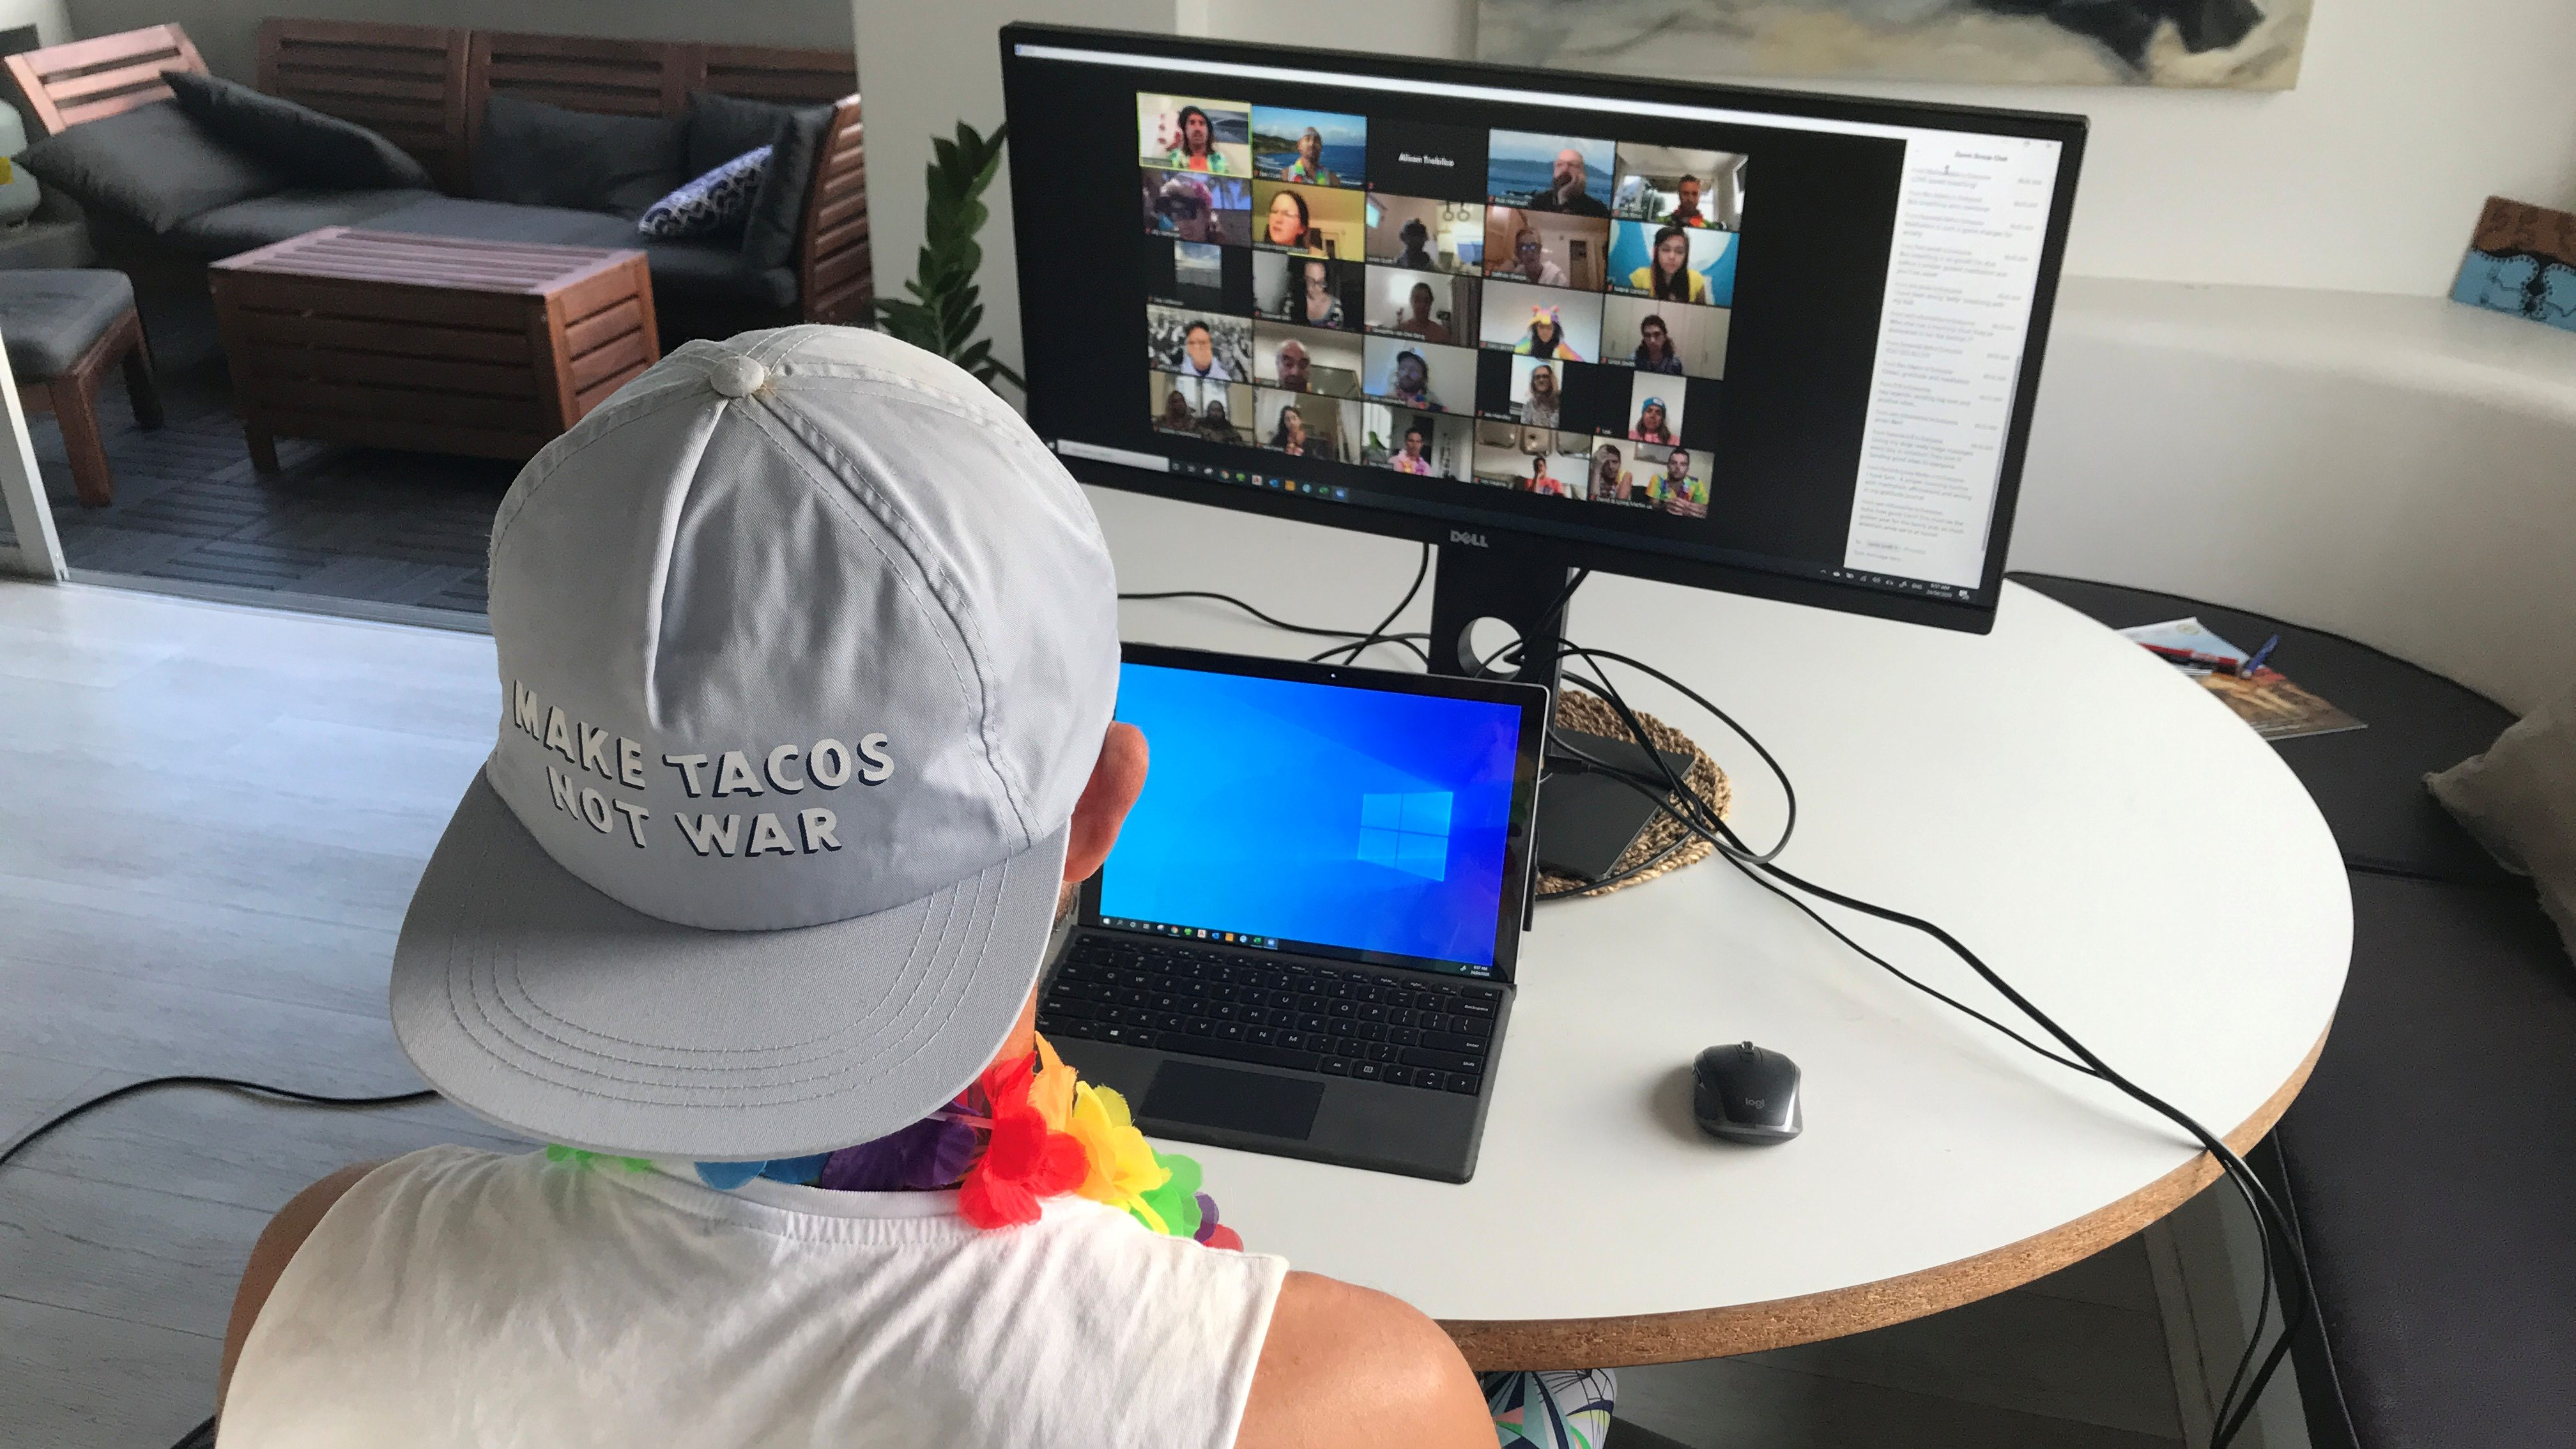 A man participates in a video call while wearing a backwards cap and a brightly colored lei.